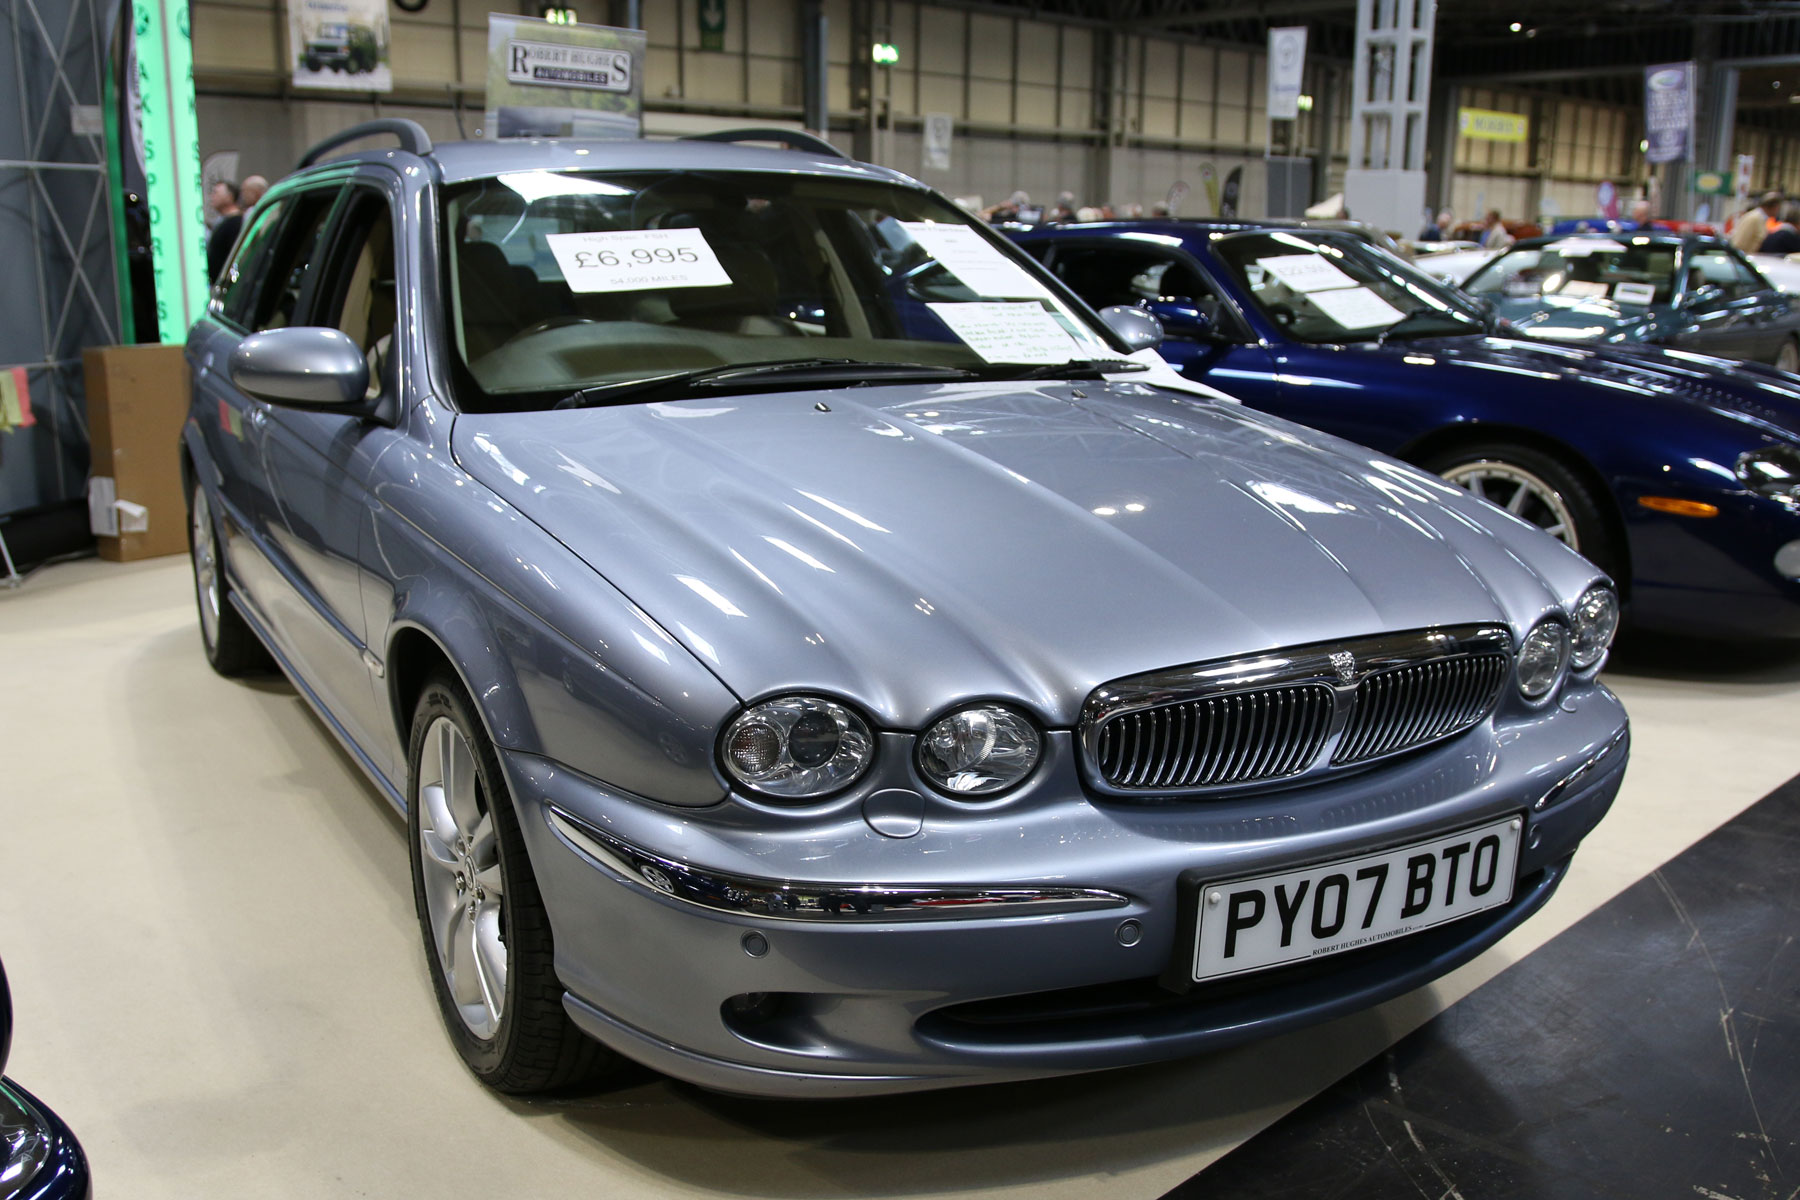 Jaguar X-Type: £6,995